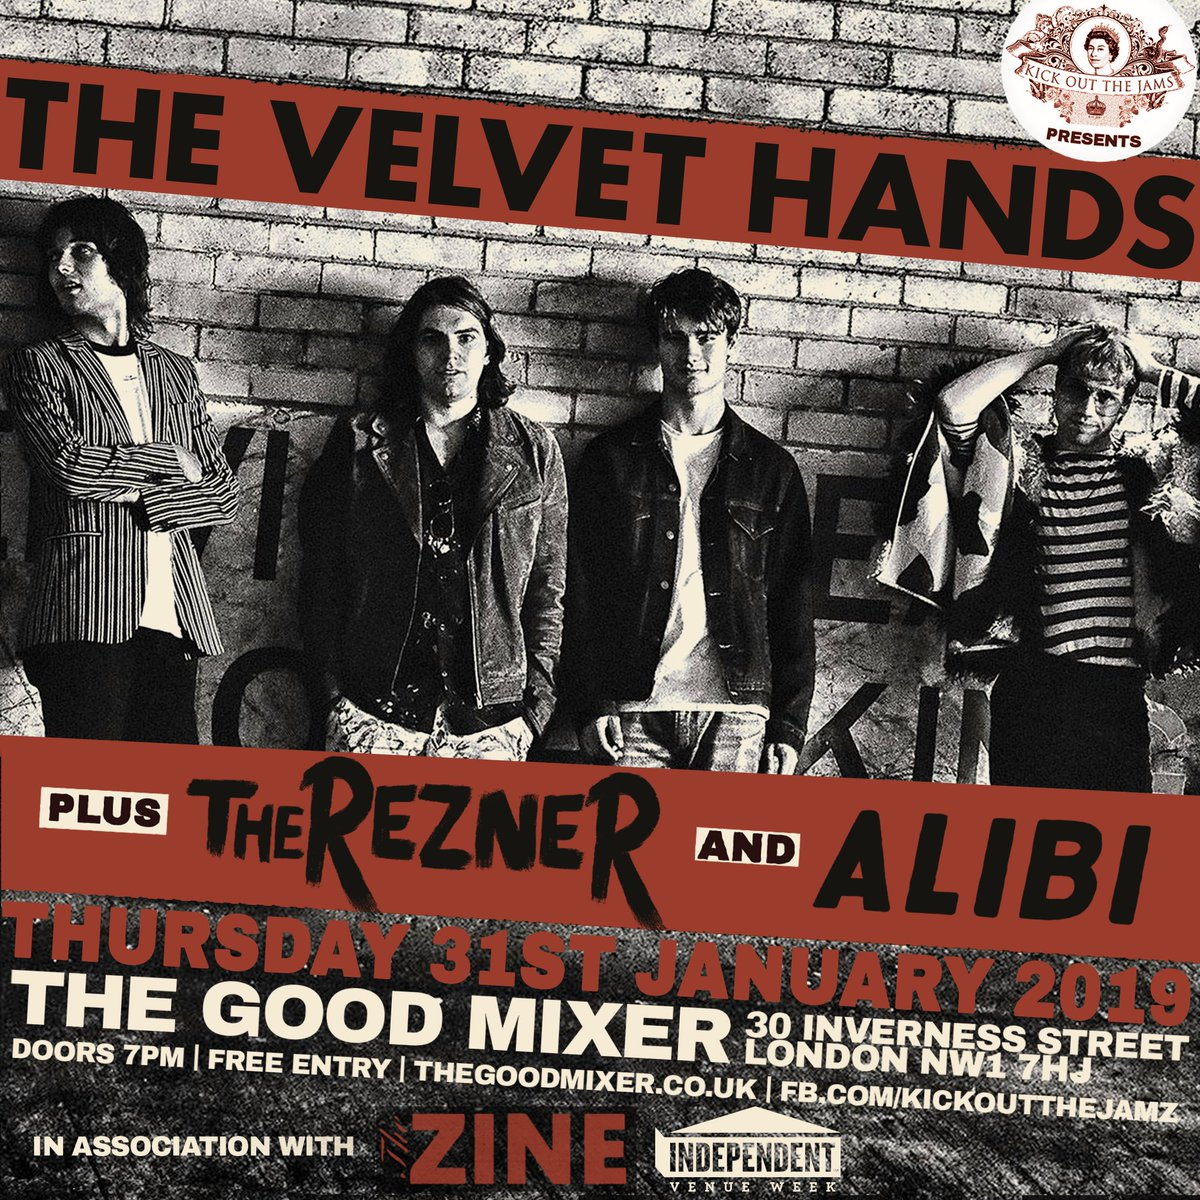 Weve added a banging extra show on Jan 31st at @goodmixerpub as part of @IVW_UK feat. @thevelvethands1 @TheRezner & @alibihastings in assoc. with @thezineuk Entry £2 on the door with all money going to @MAH_Gigs